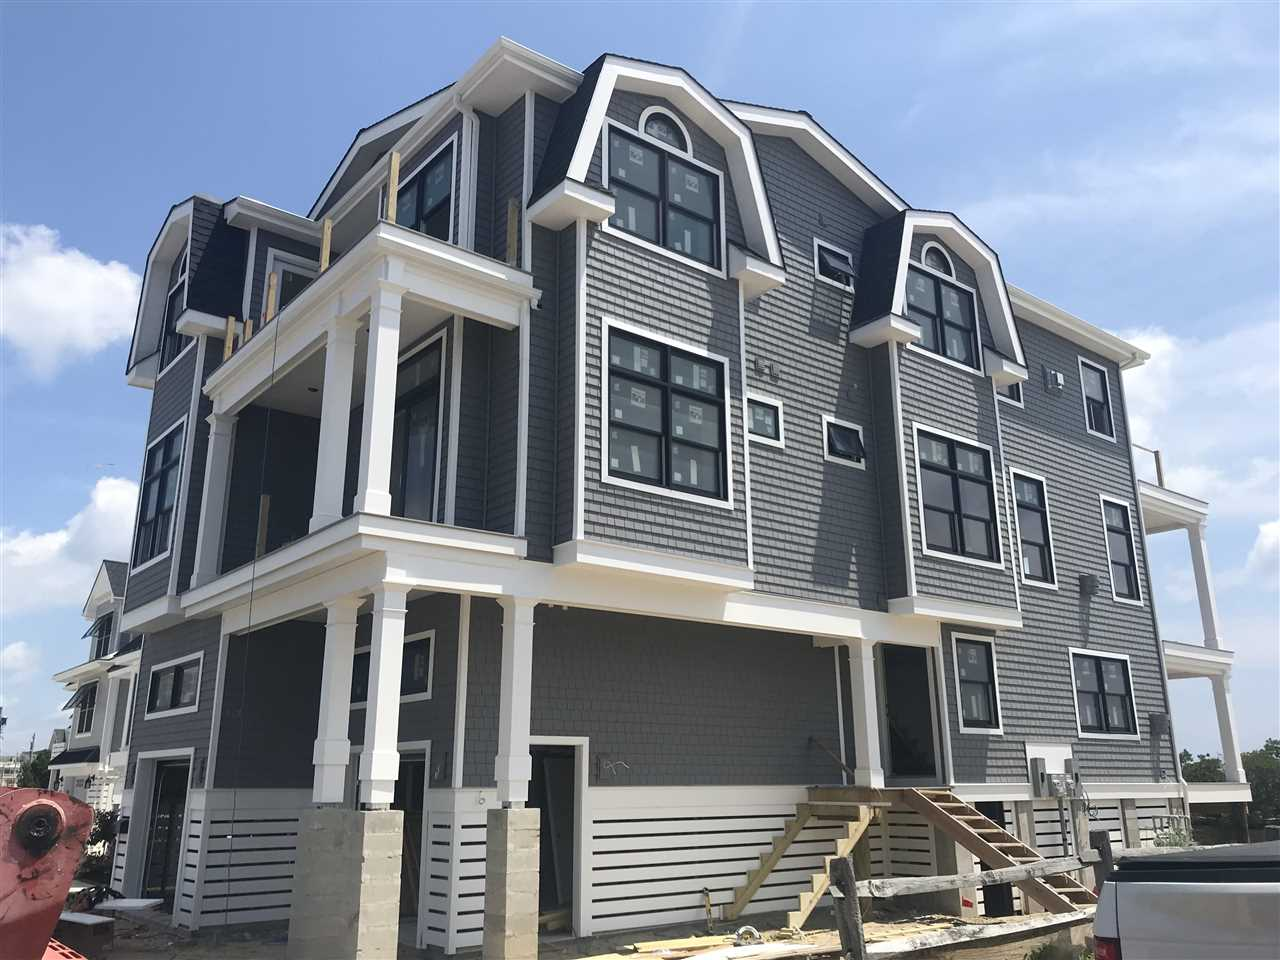 9113 Pleasure, Sea Isle City, NJ 08243